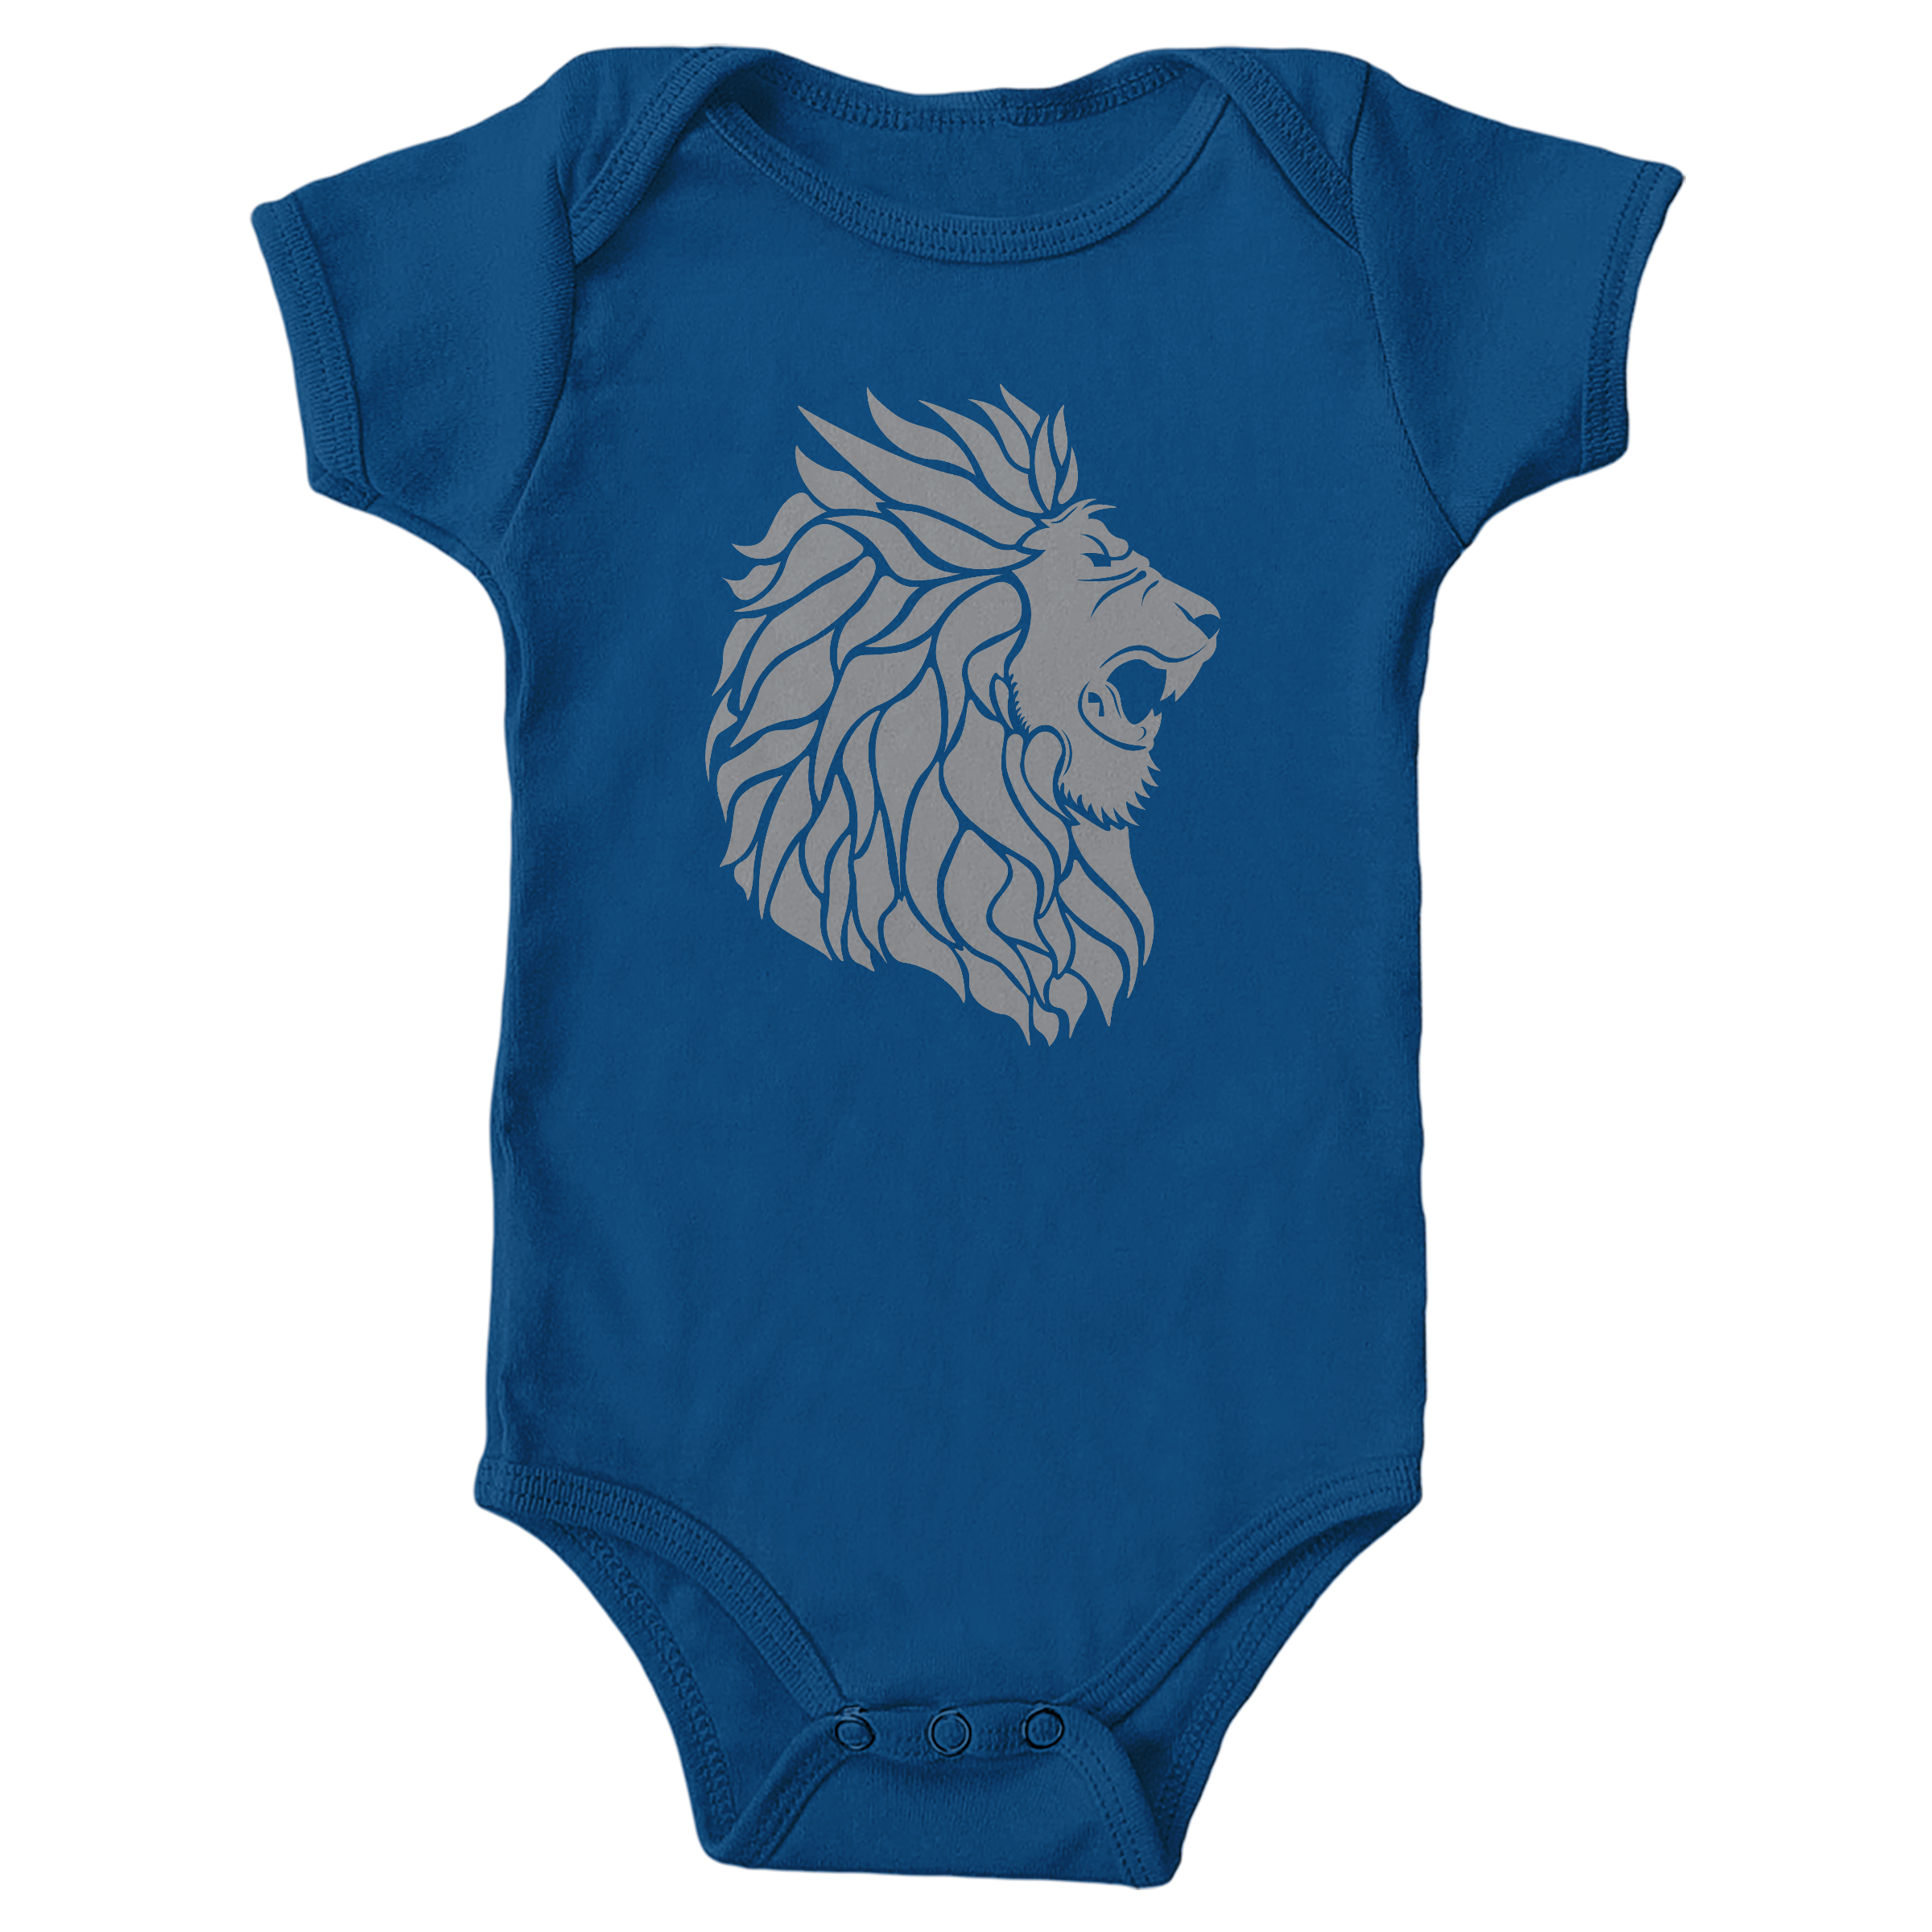 Daniel and The Lion Royal (Onesie)